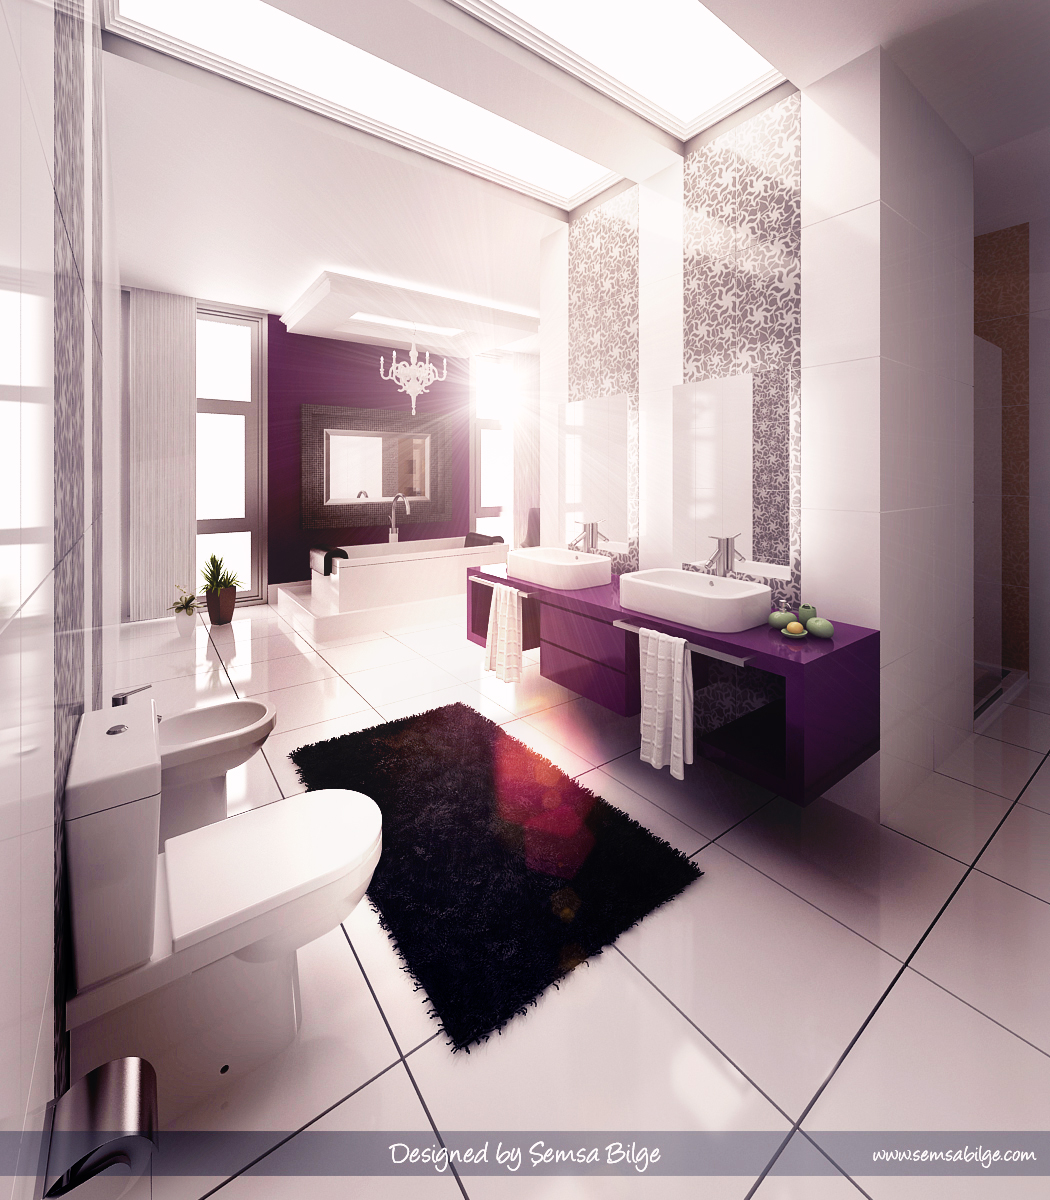 Beautiful bathroom designs ideas interior design for Gorgeous bathroom designs